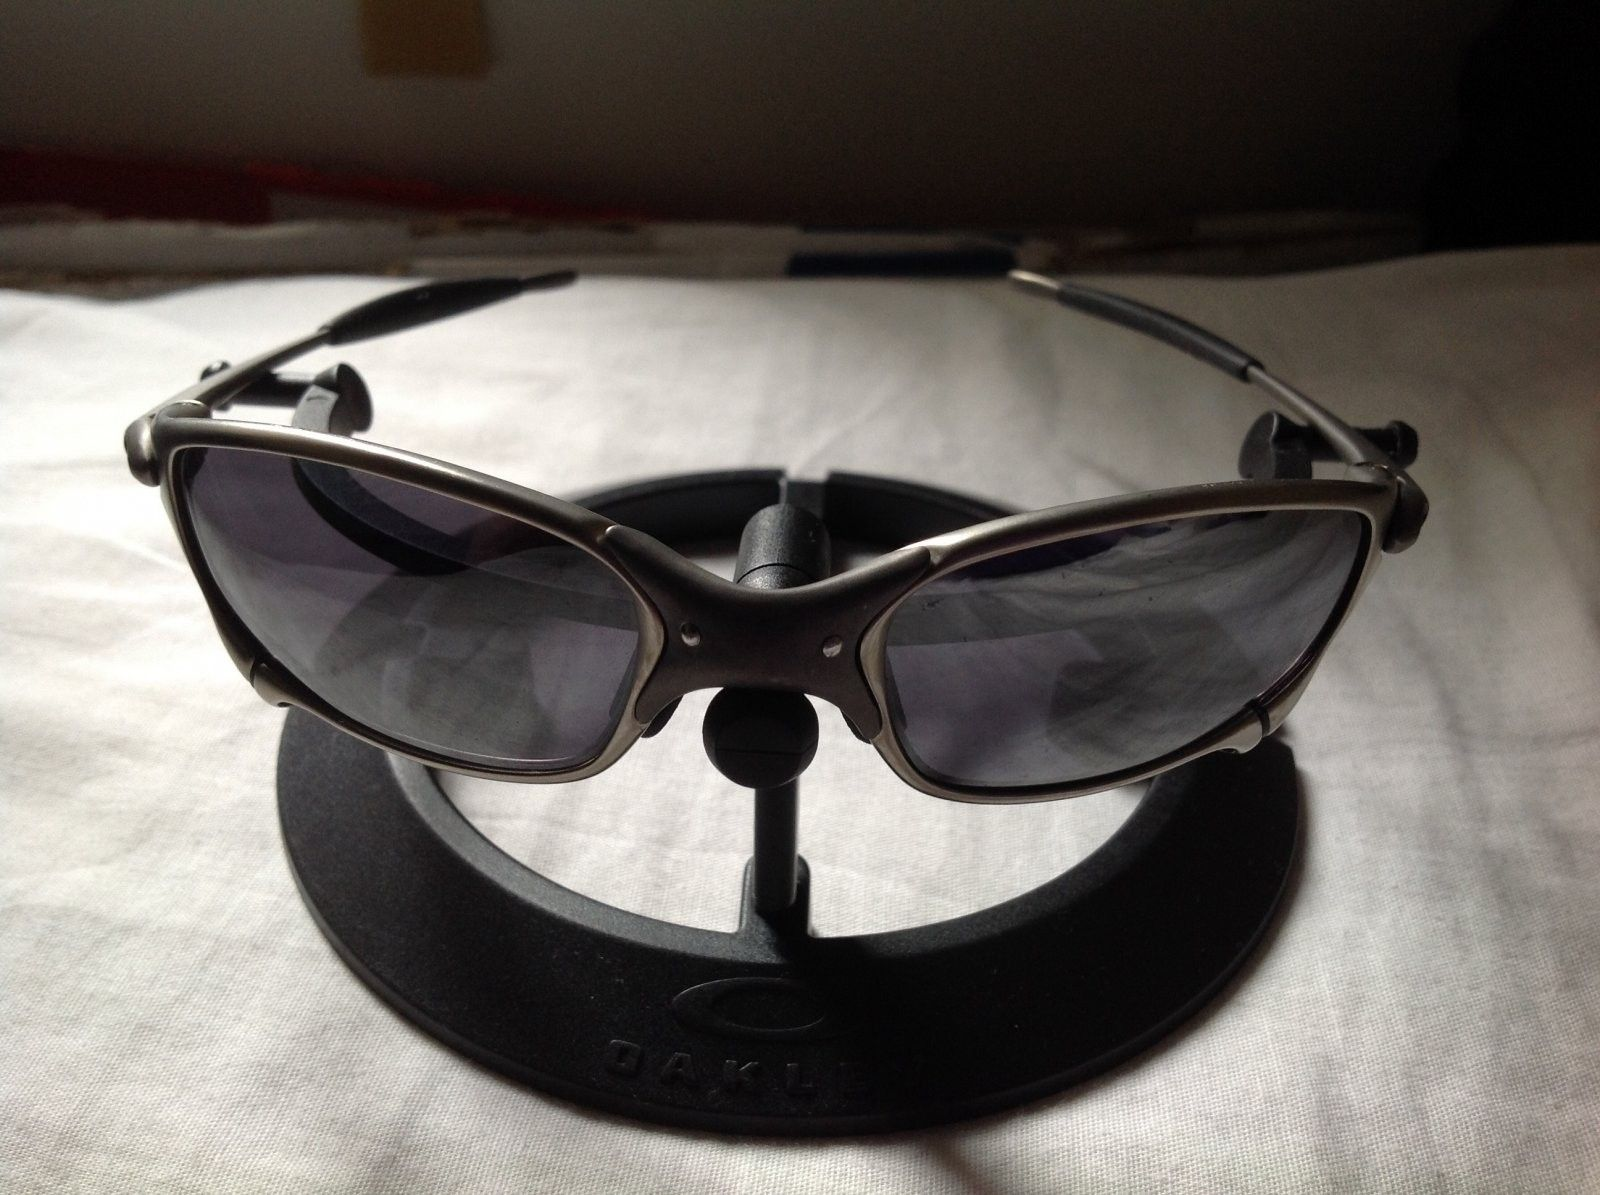 What Kind Of Lens Should I Put On These Babies - image.jpg